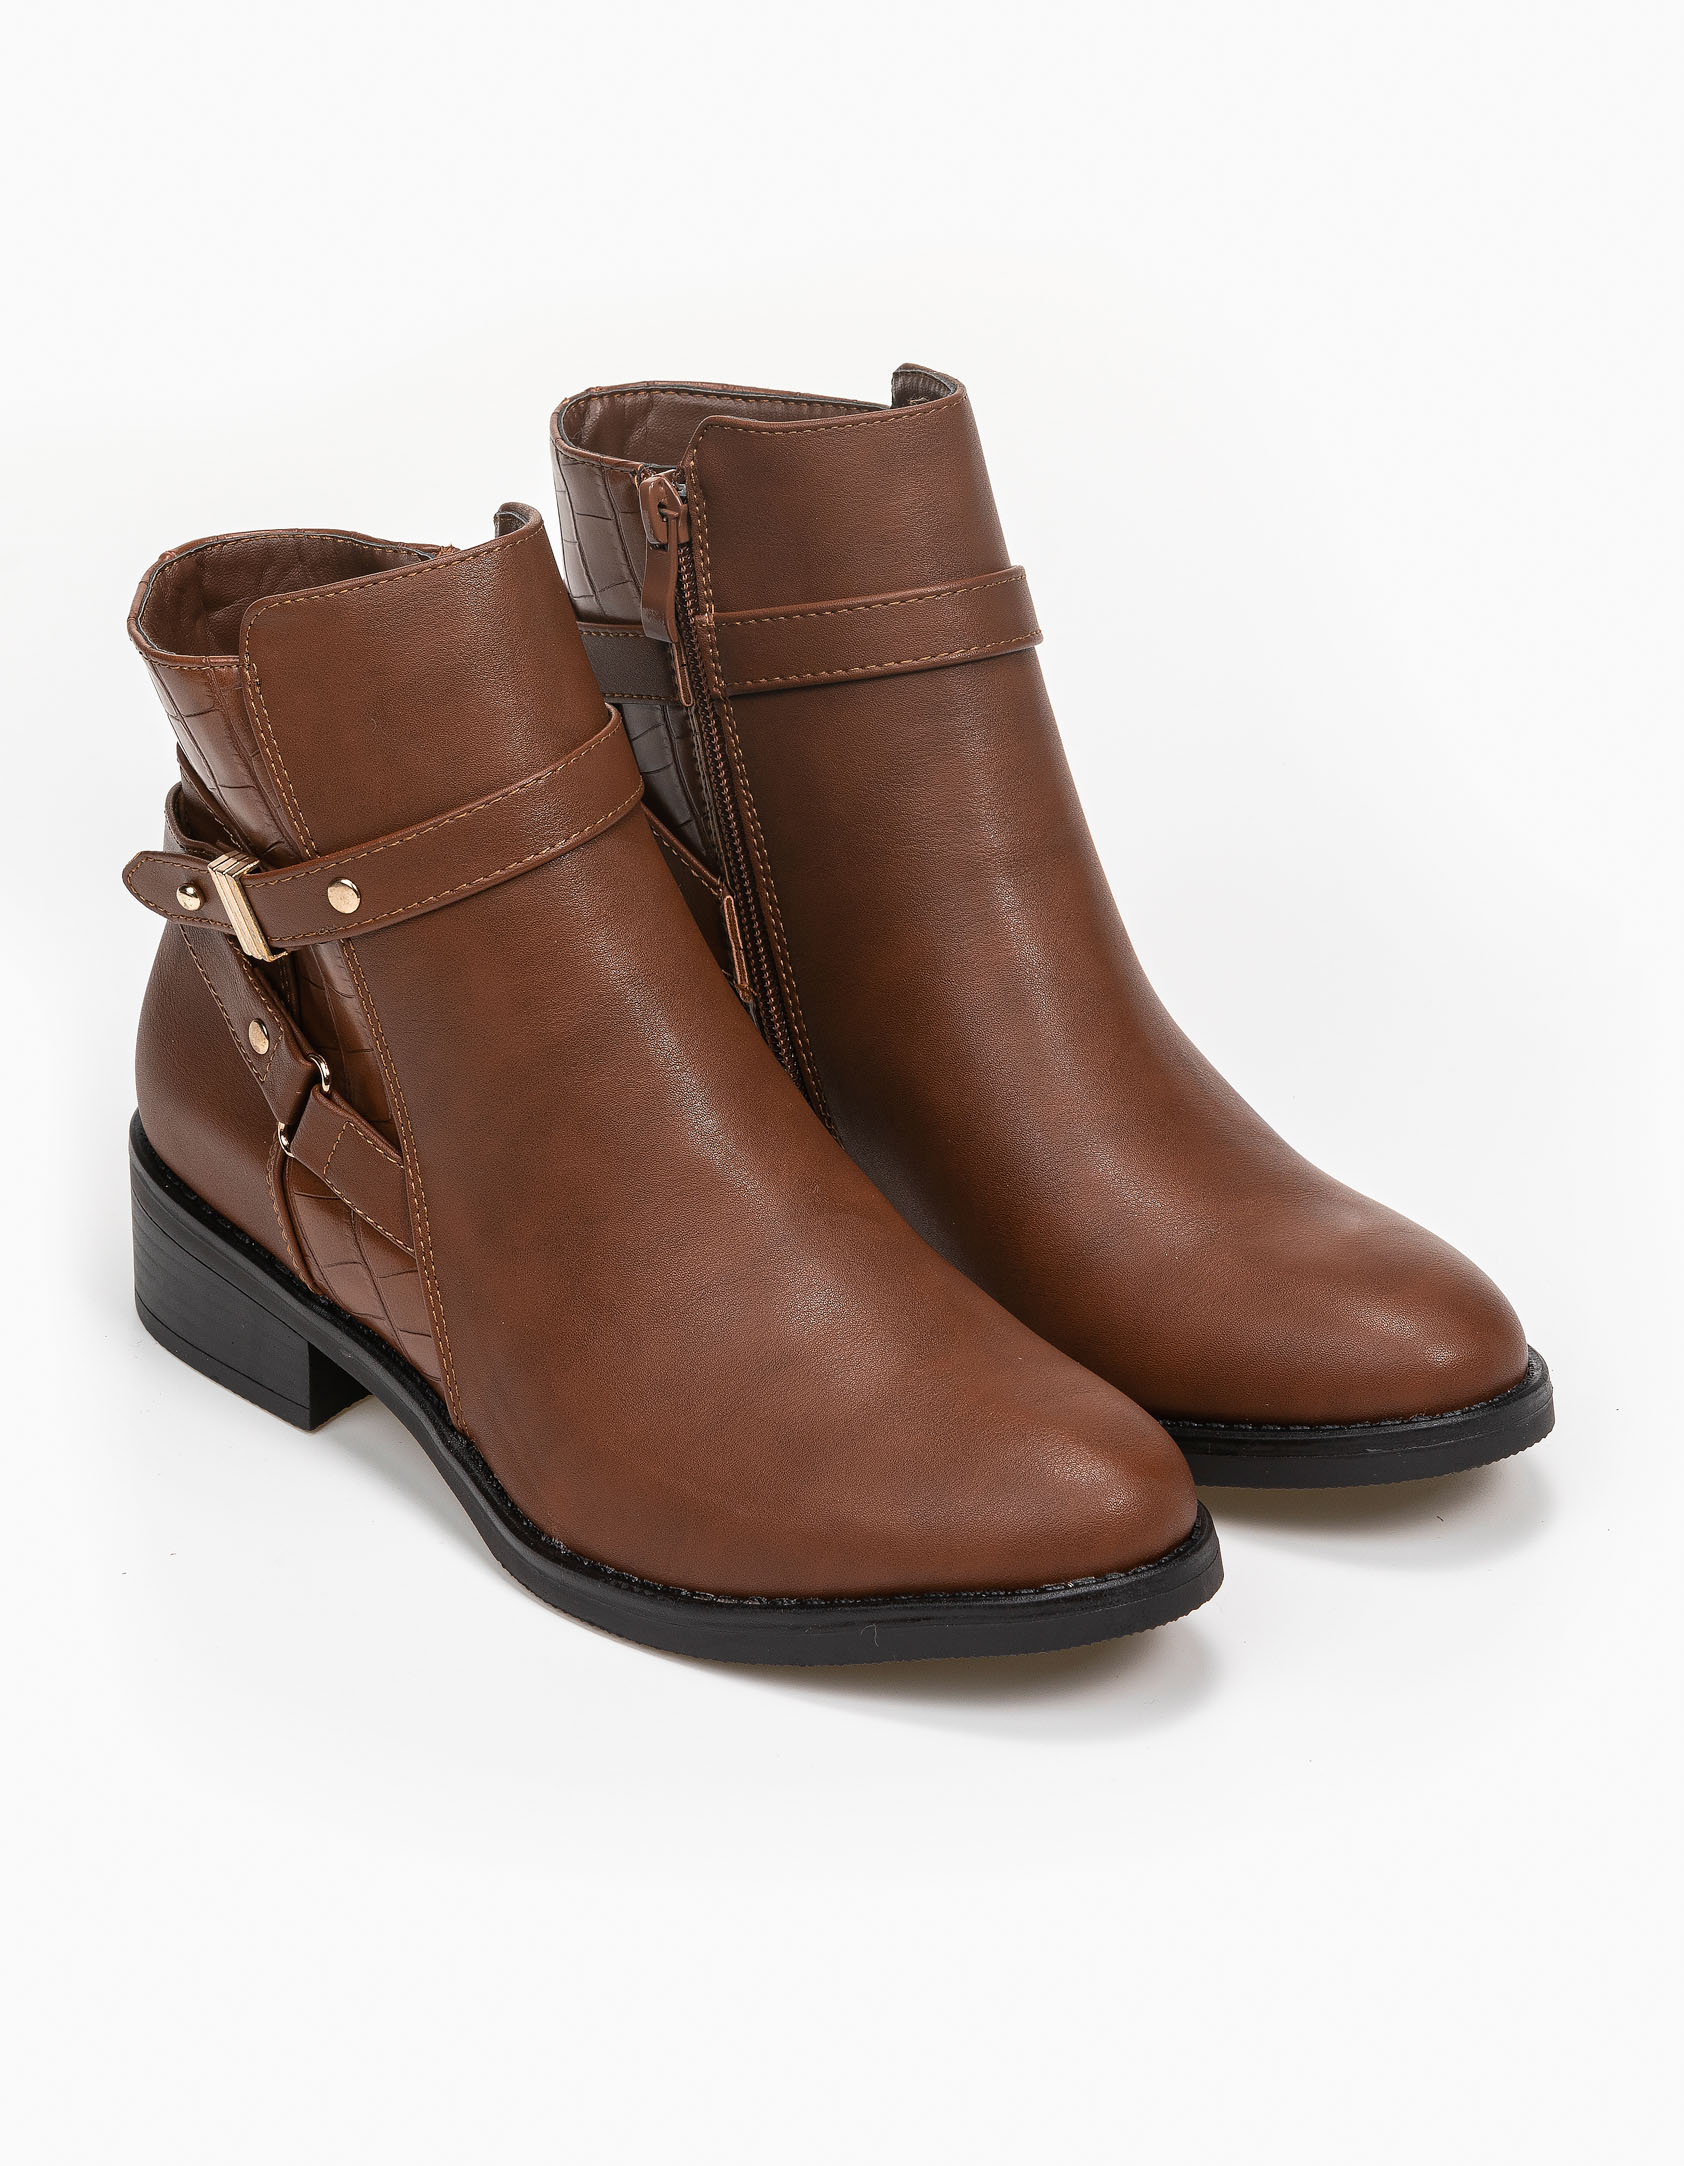 Ankle boots με ζώνη και croco - Κάμελ